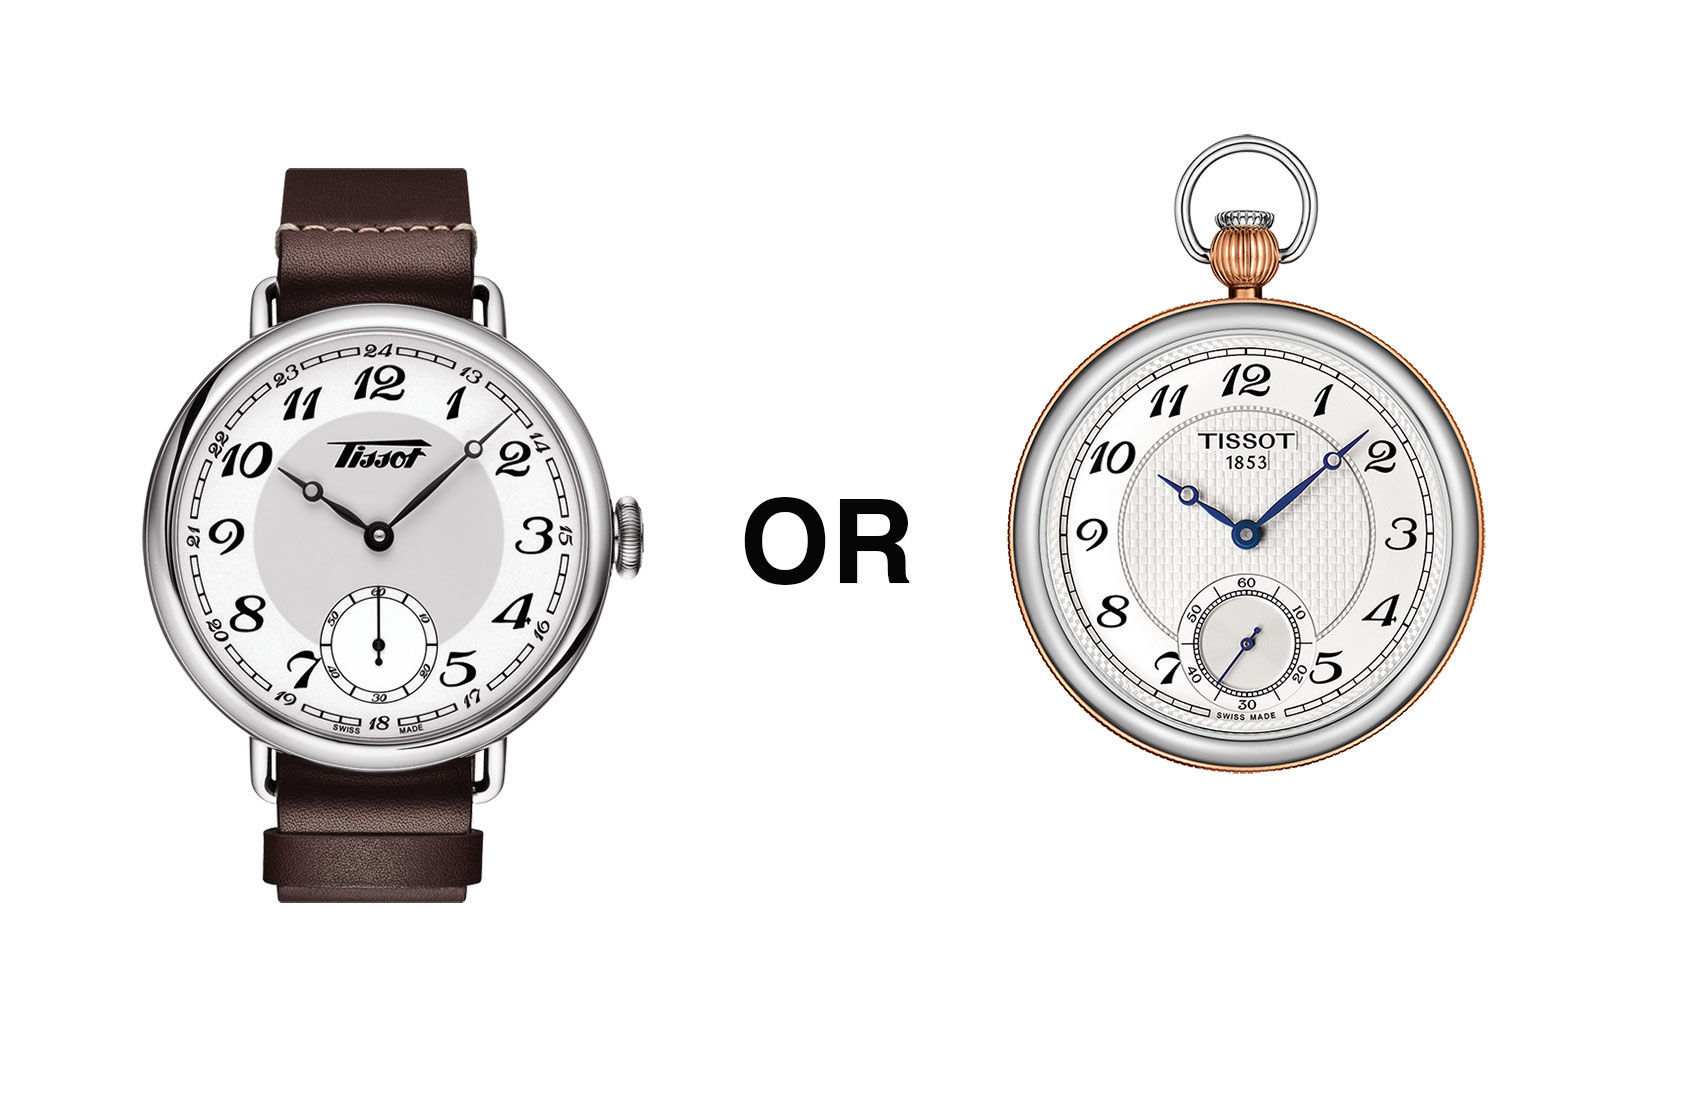 tissot-wrist-or-pocket